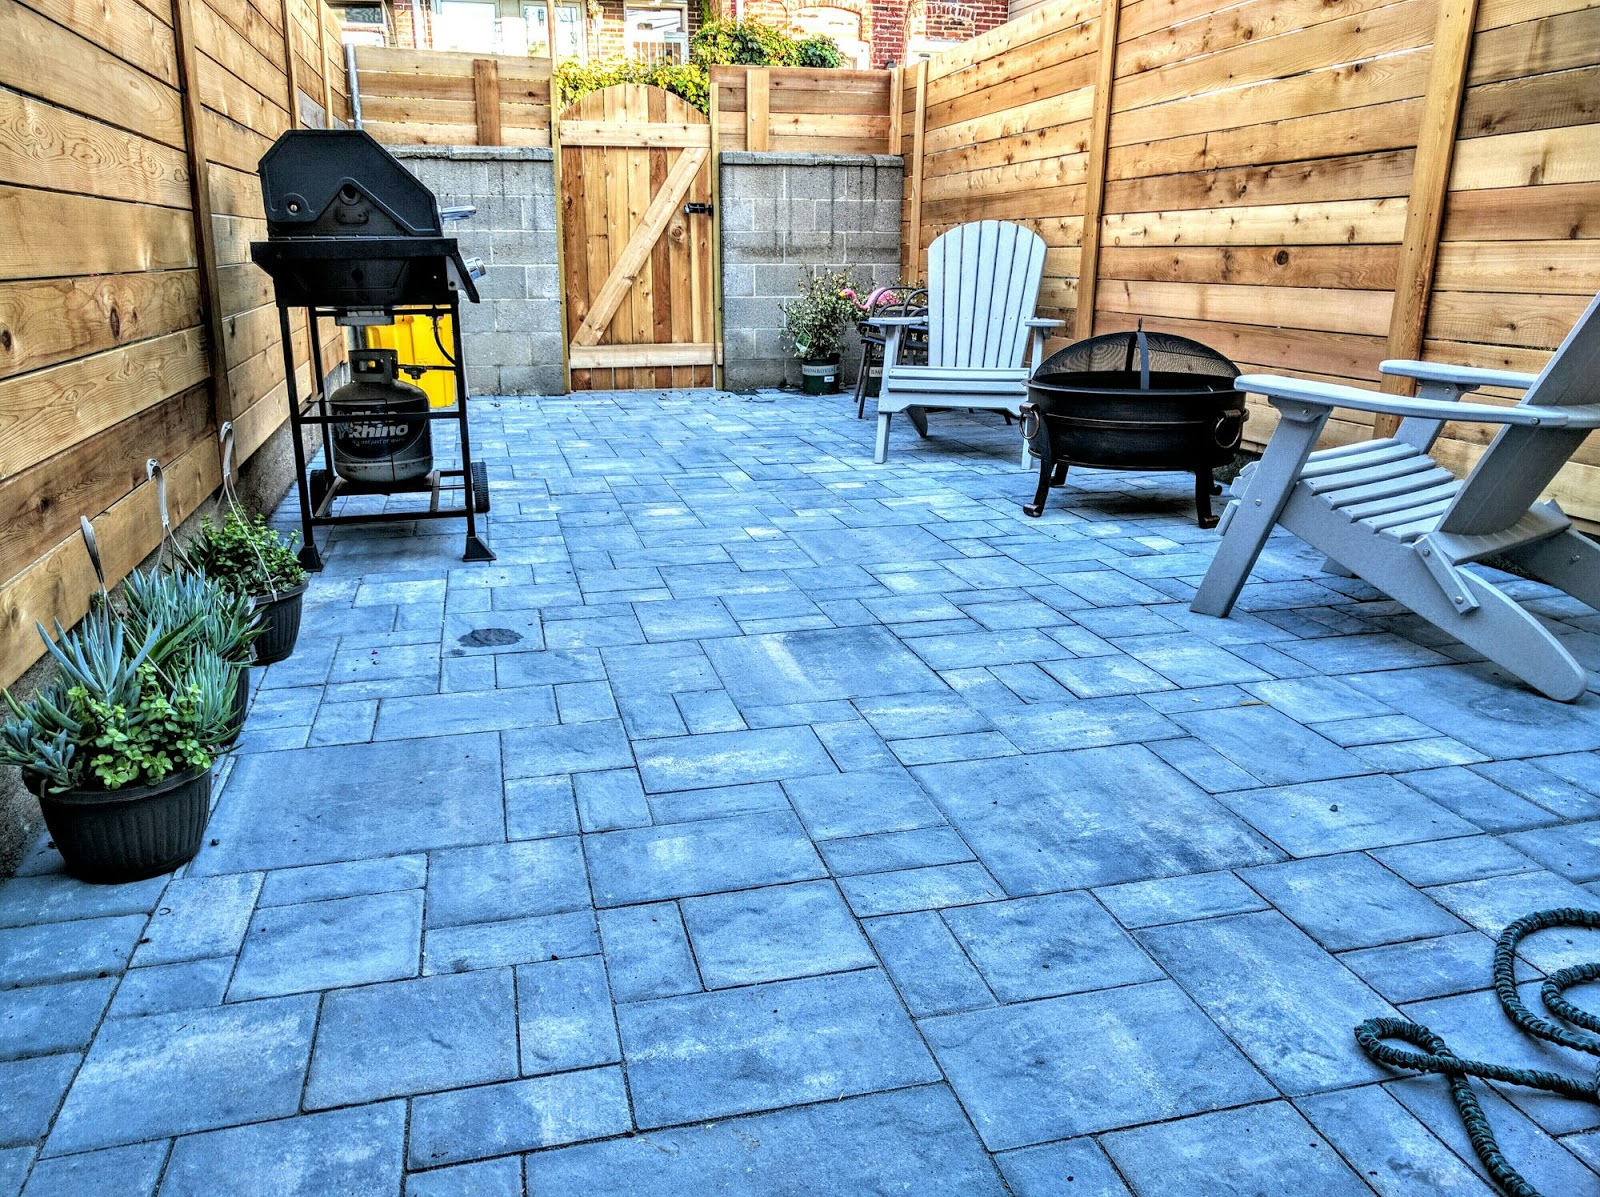 Landscape Design With Pool And Pavers